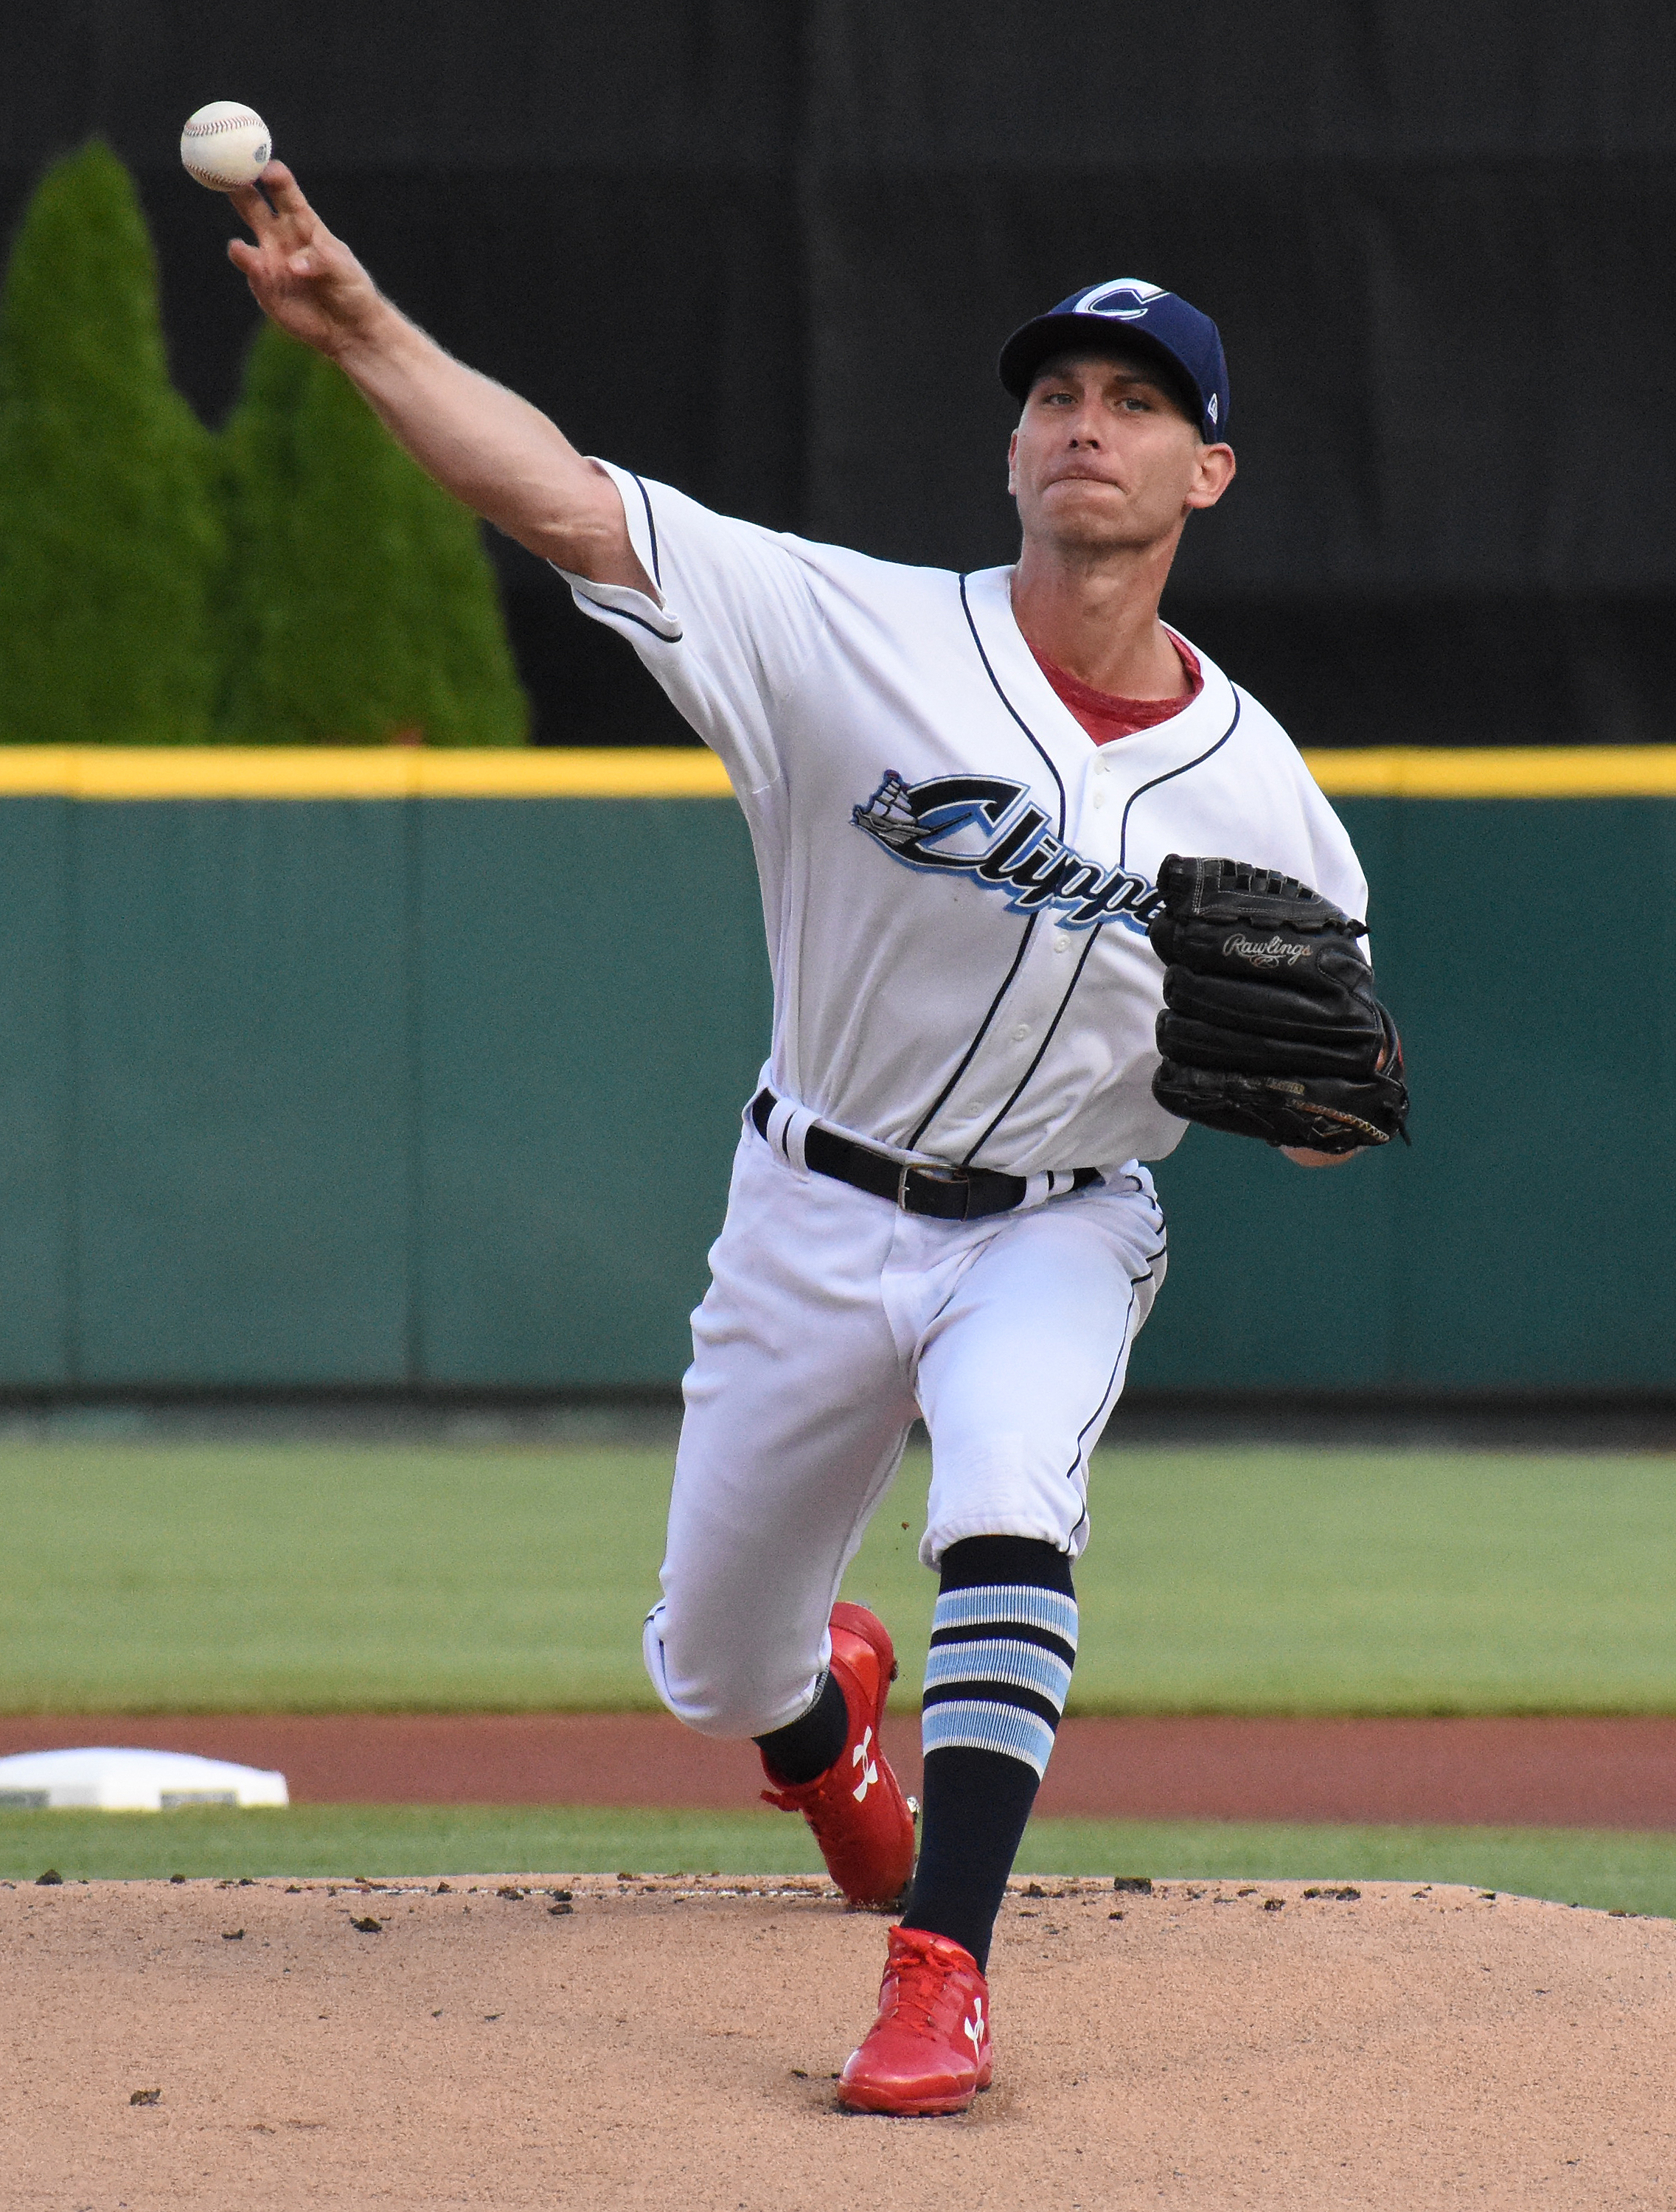 Photo credit: Joe Santry / Columbus Clippers